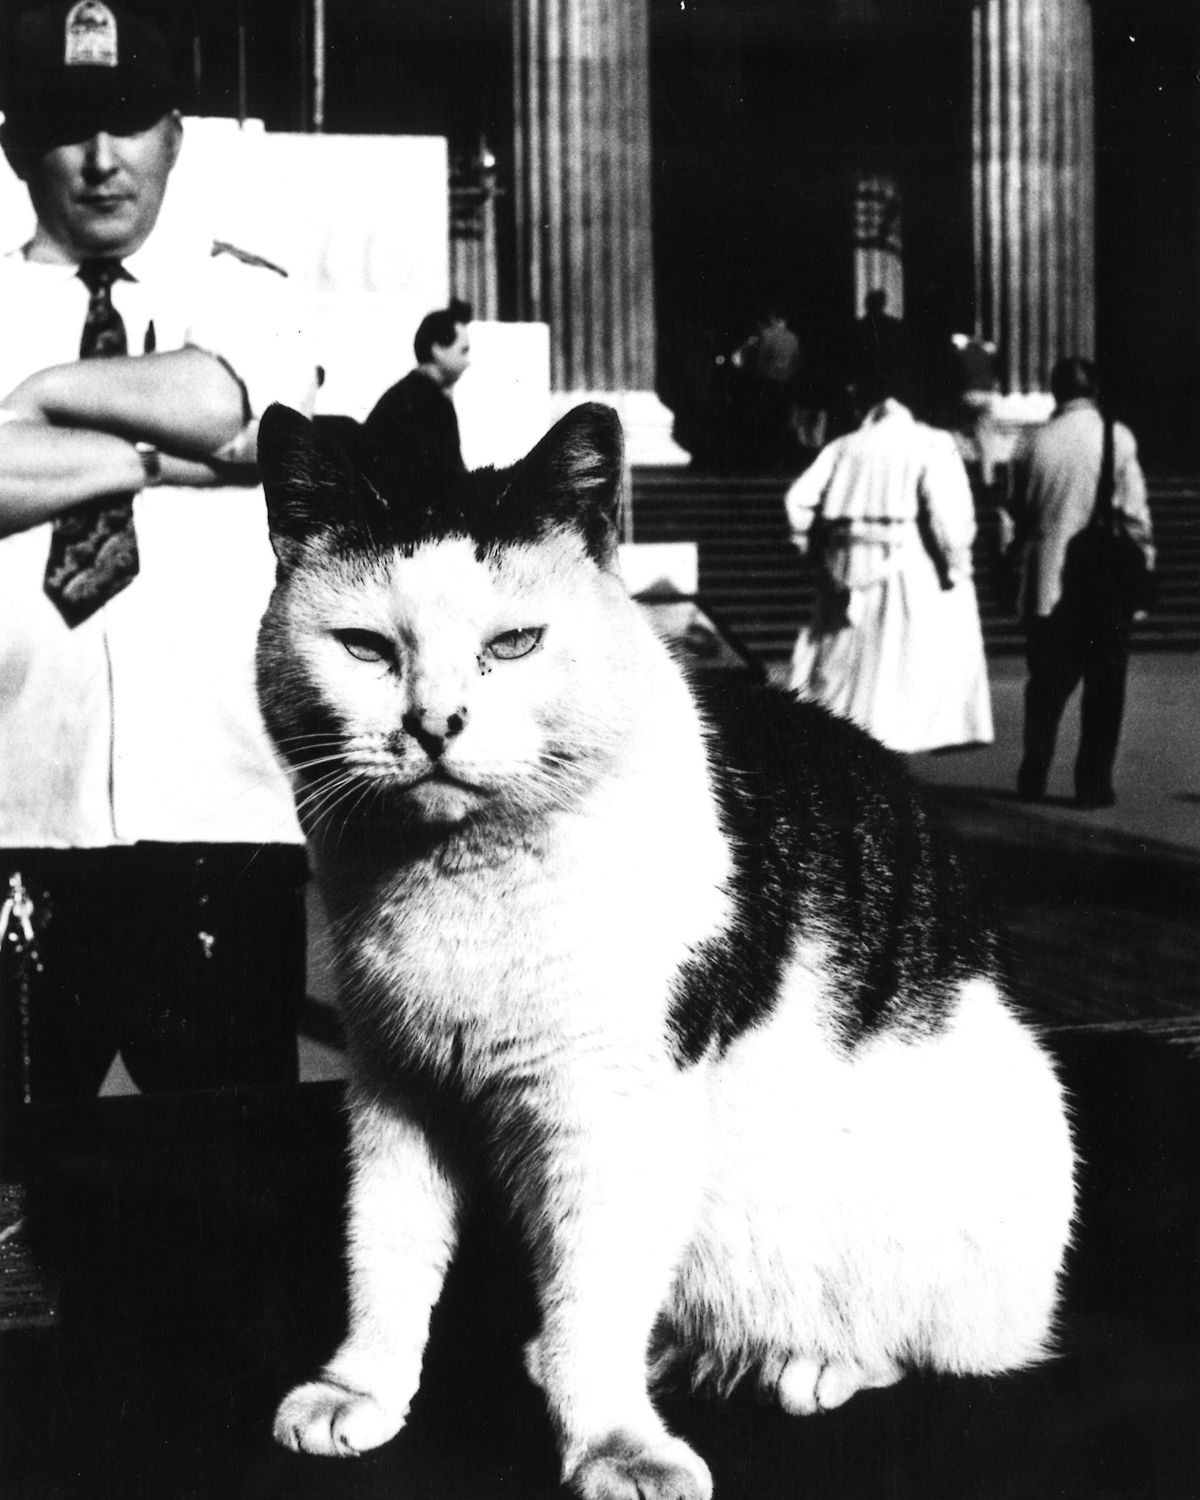 The purrrplexing story of the British Museum cats The